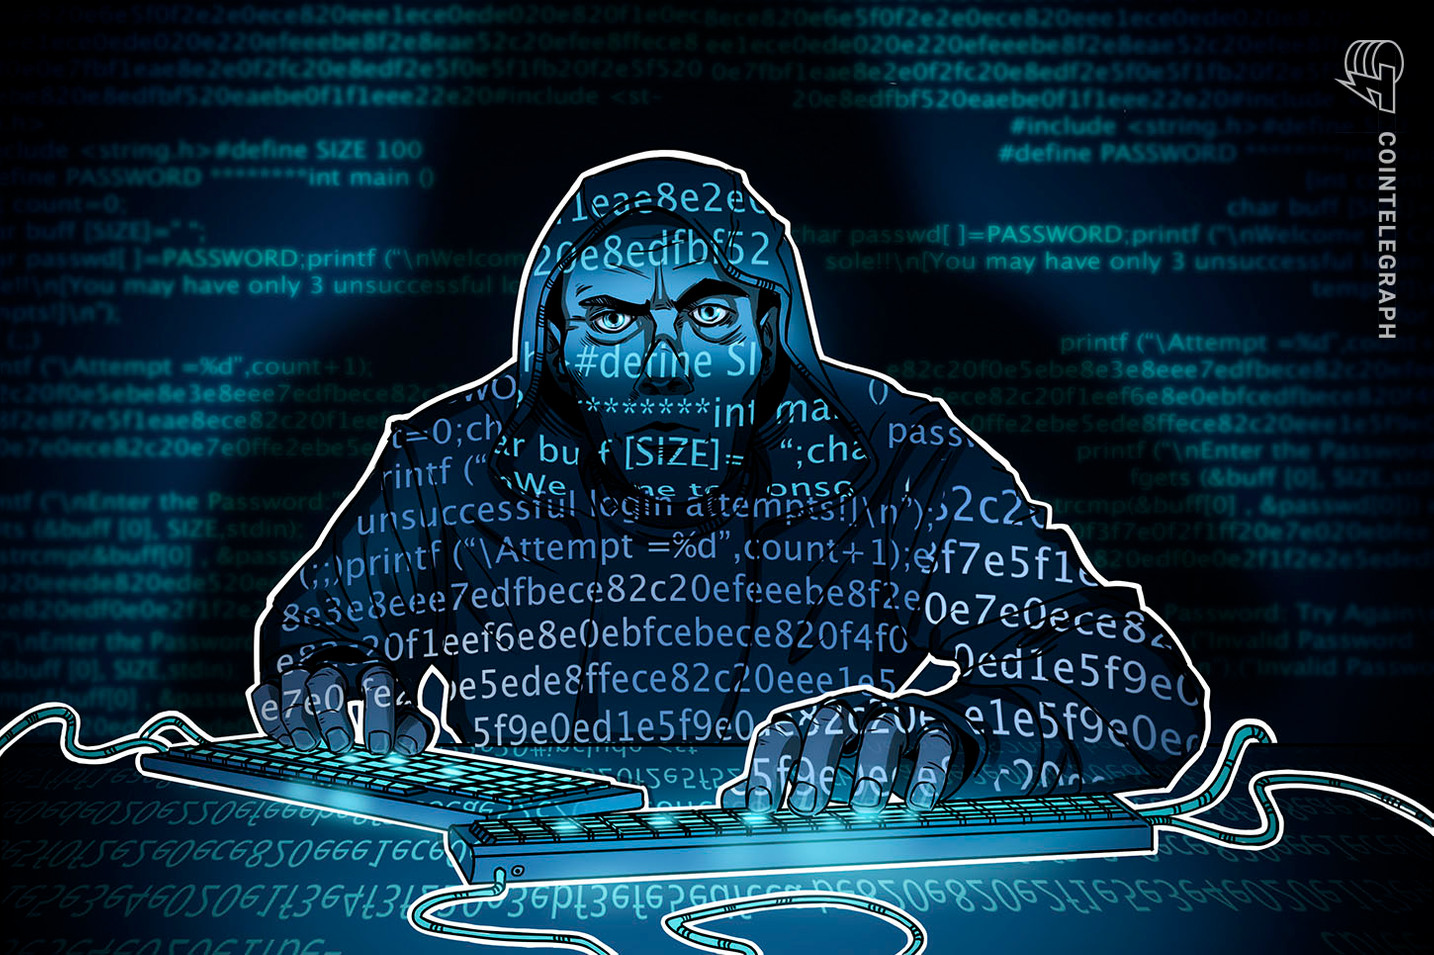 Research Suggests Russian-Based Hackers Behind Ryuk Ransomware's $2.5 Million Gains